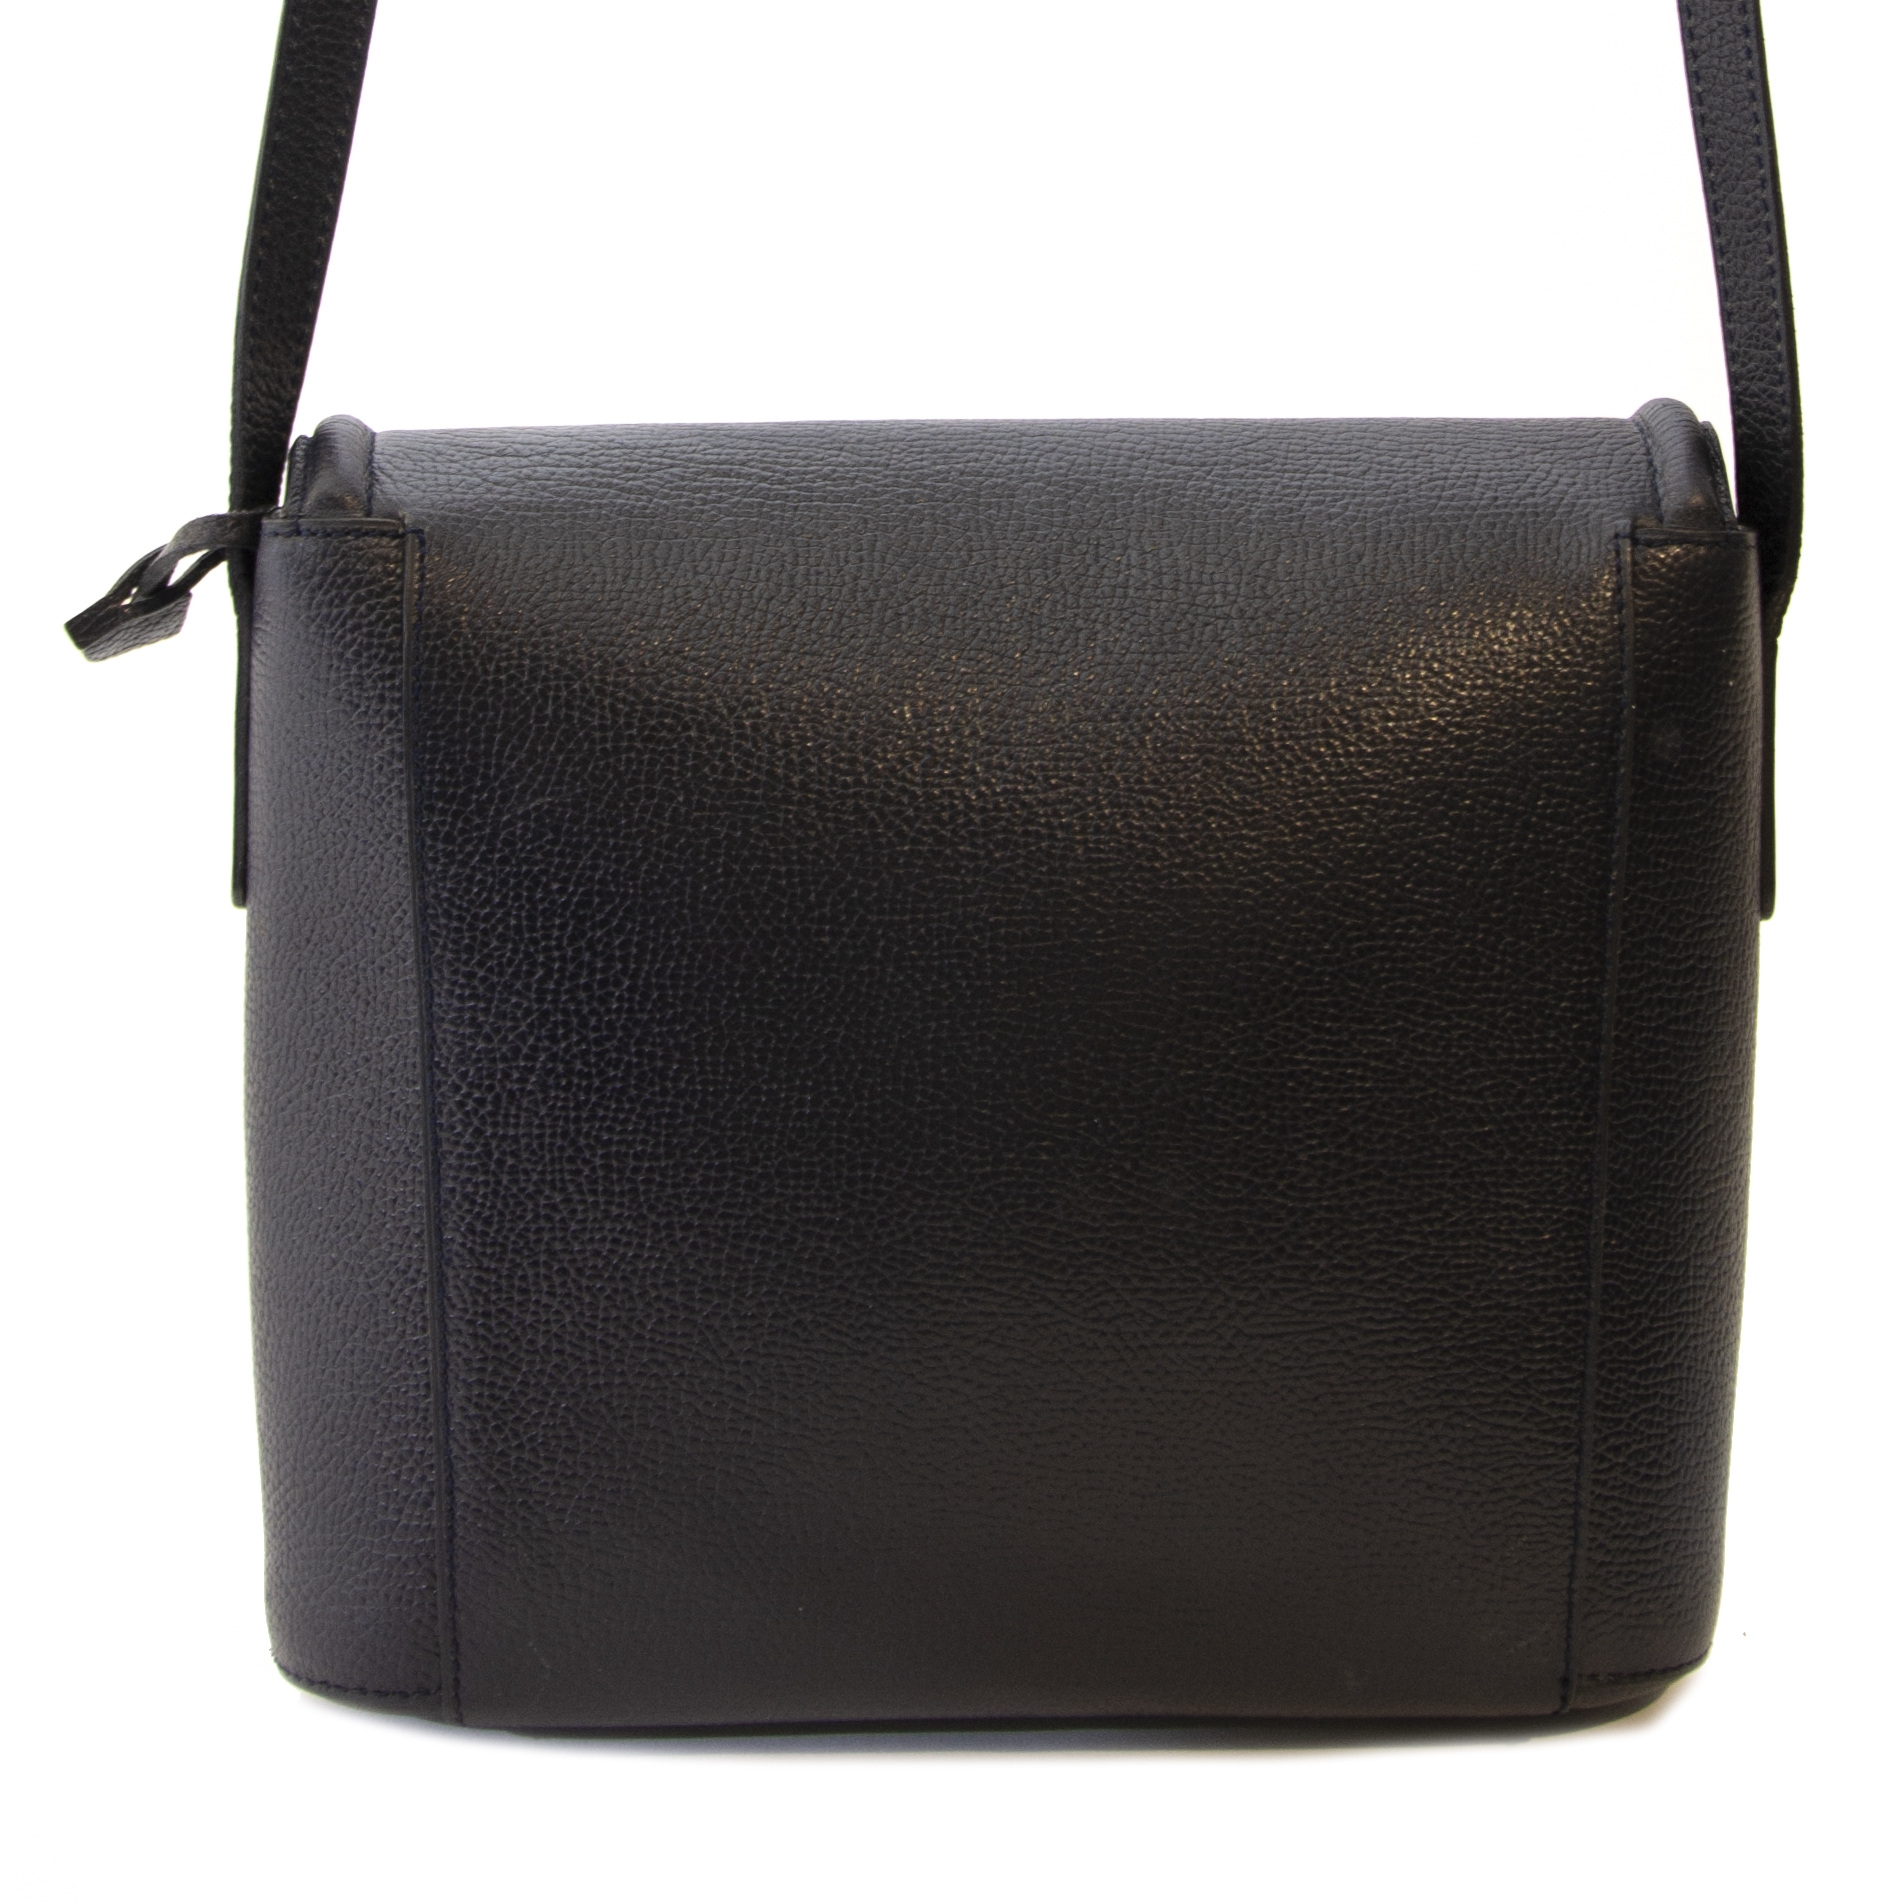 Authentique seconde main Delvaux Dark Blue Leather Crossbody Bag achète en ligne webshop LabelLOV